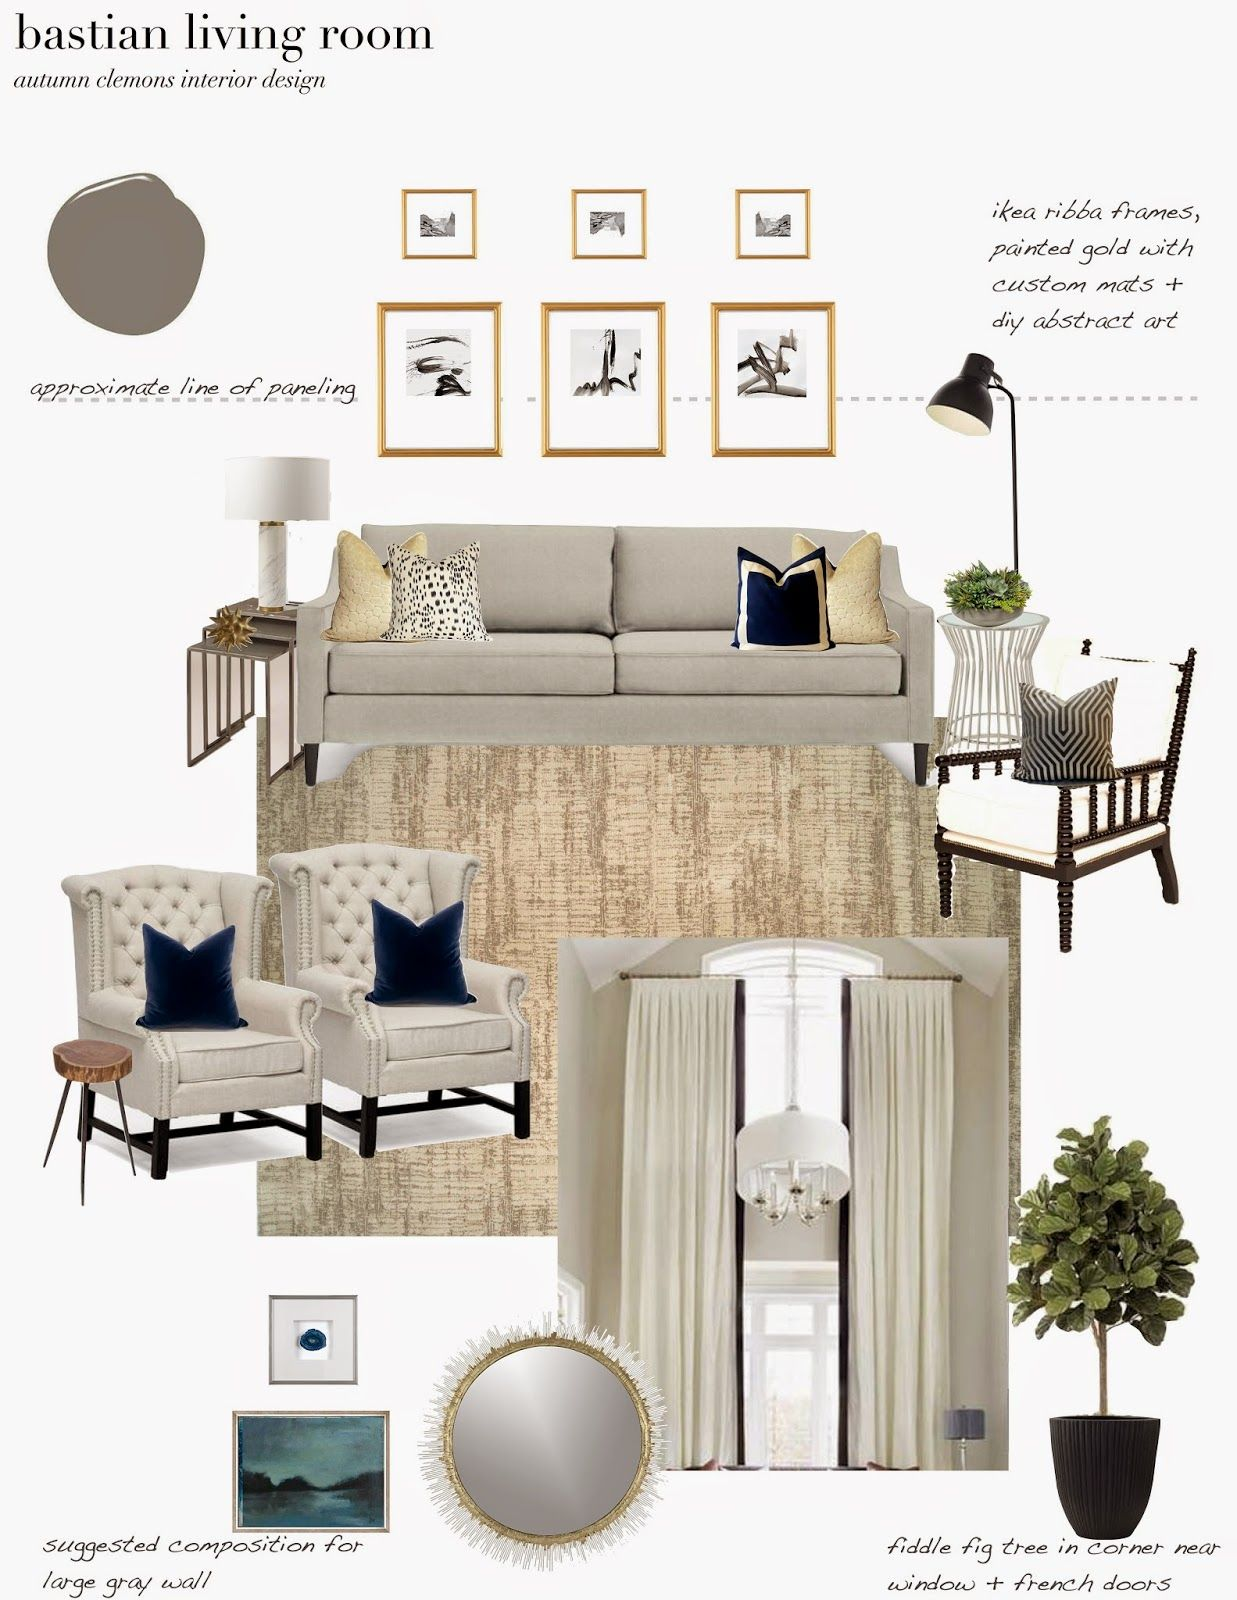 E Design Plan For A Dramatic Neutral Living Room Trimmed Drapes Fiddle Fig Tree Neutral Rug Neutral Living Room Living Room Rugs Ikea Trendy Living Rooms E design living room